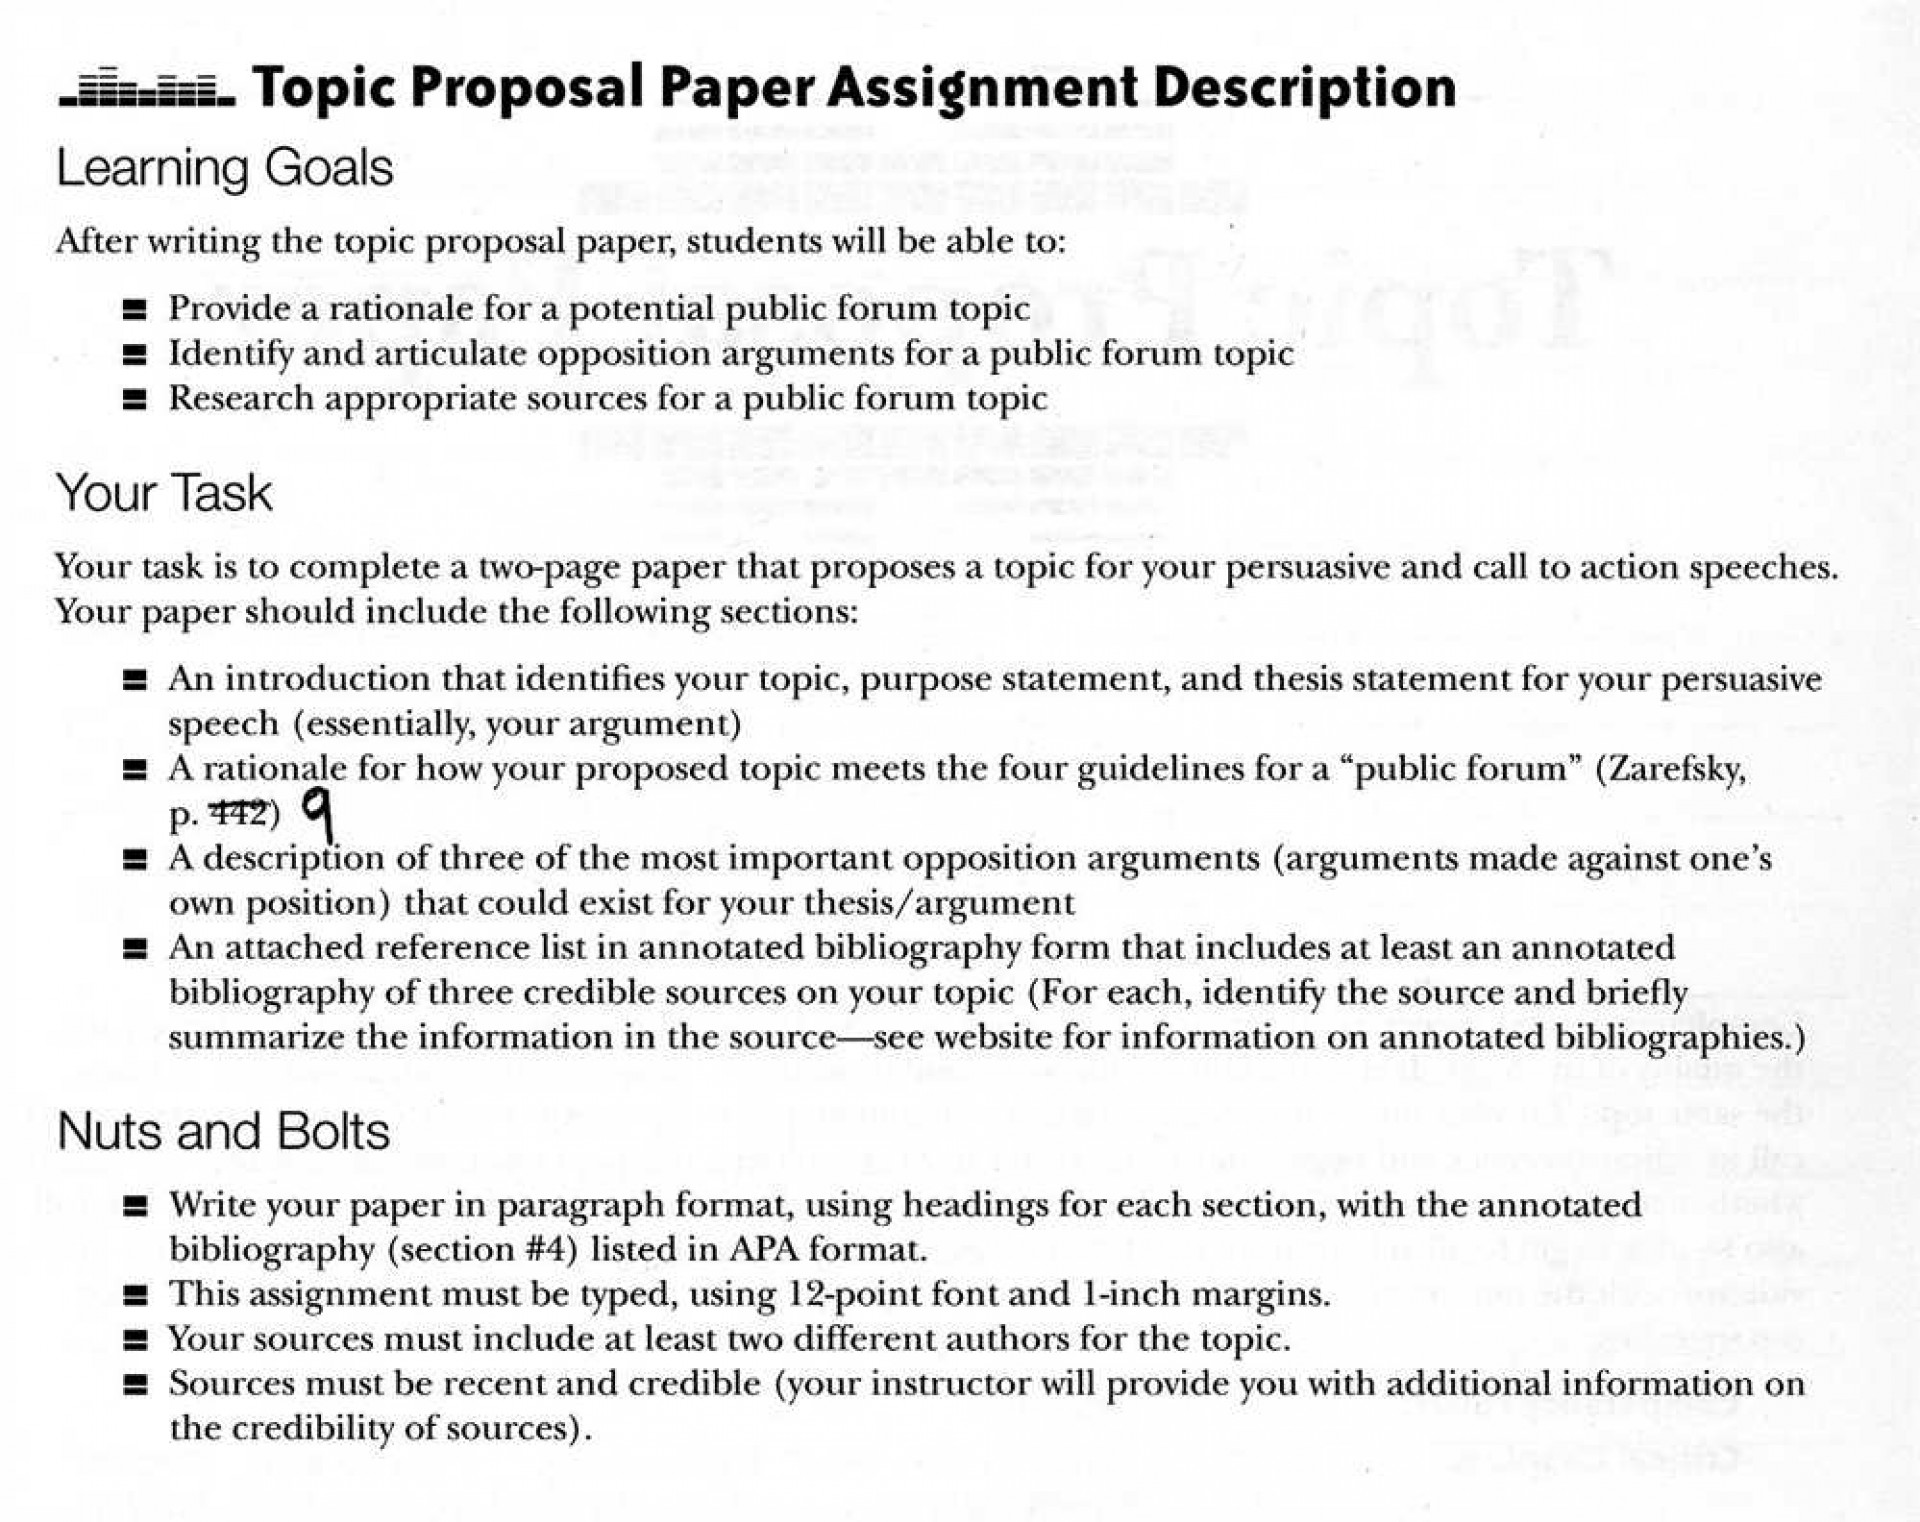 010 Stages Of Literature Review Marketing Project New Jersey Mfa Coolve Essay Topics Proposal Fun Interesting For Middle School Best College High Students Funny Example Beautiful Argumentative 2017 The Most Popular List Cxc 1920